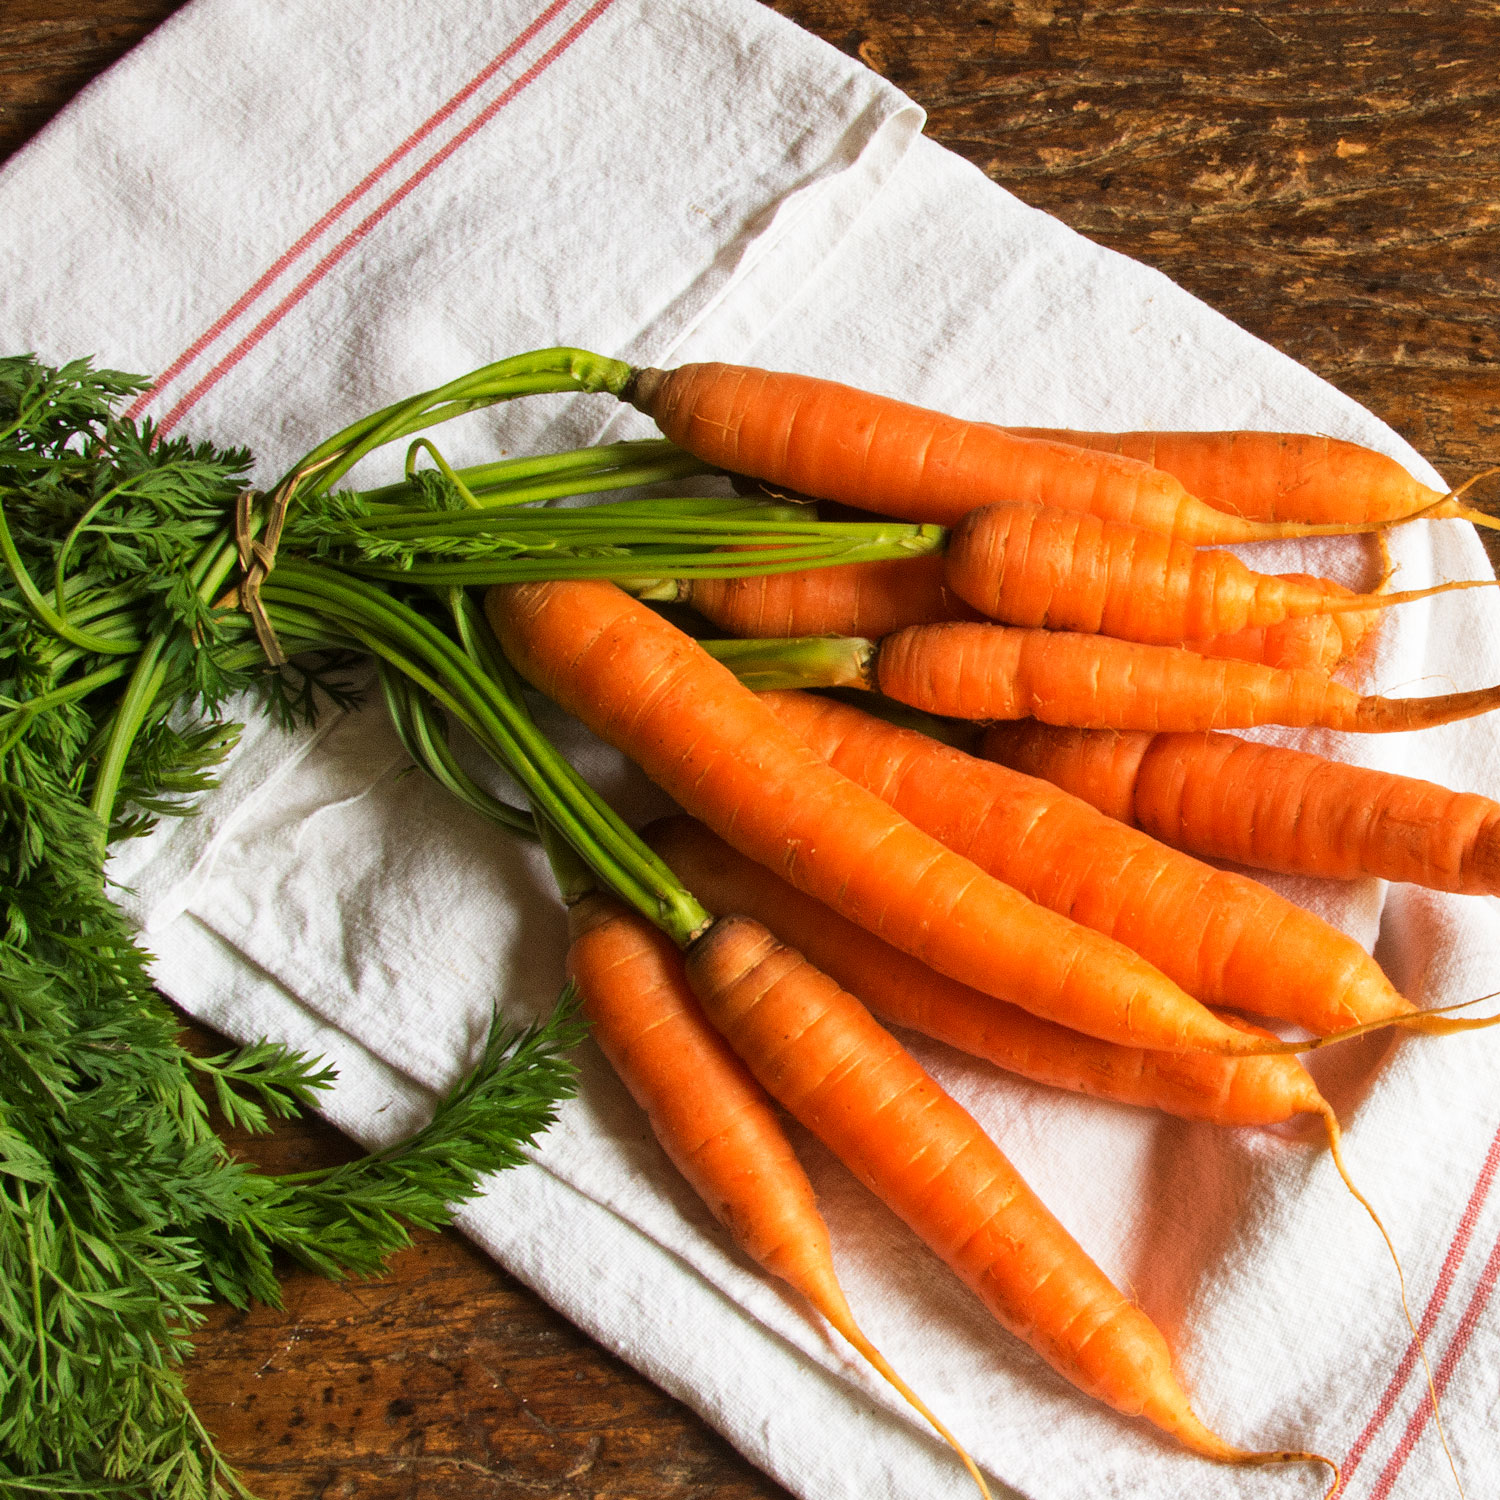 https://www.eatingwell.com/article/7874487/growing-carrots-from-scraps/gettyimages-1031109368/